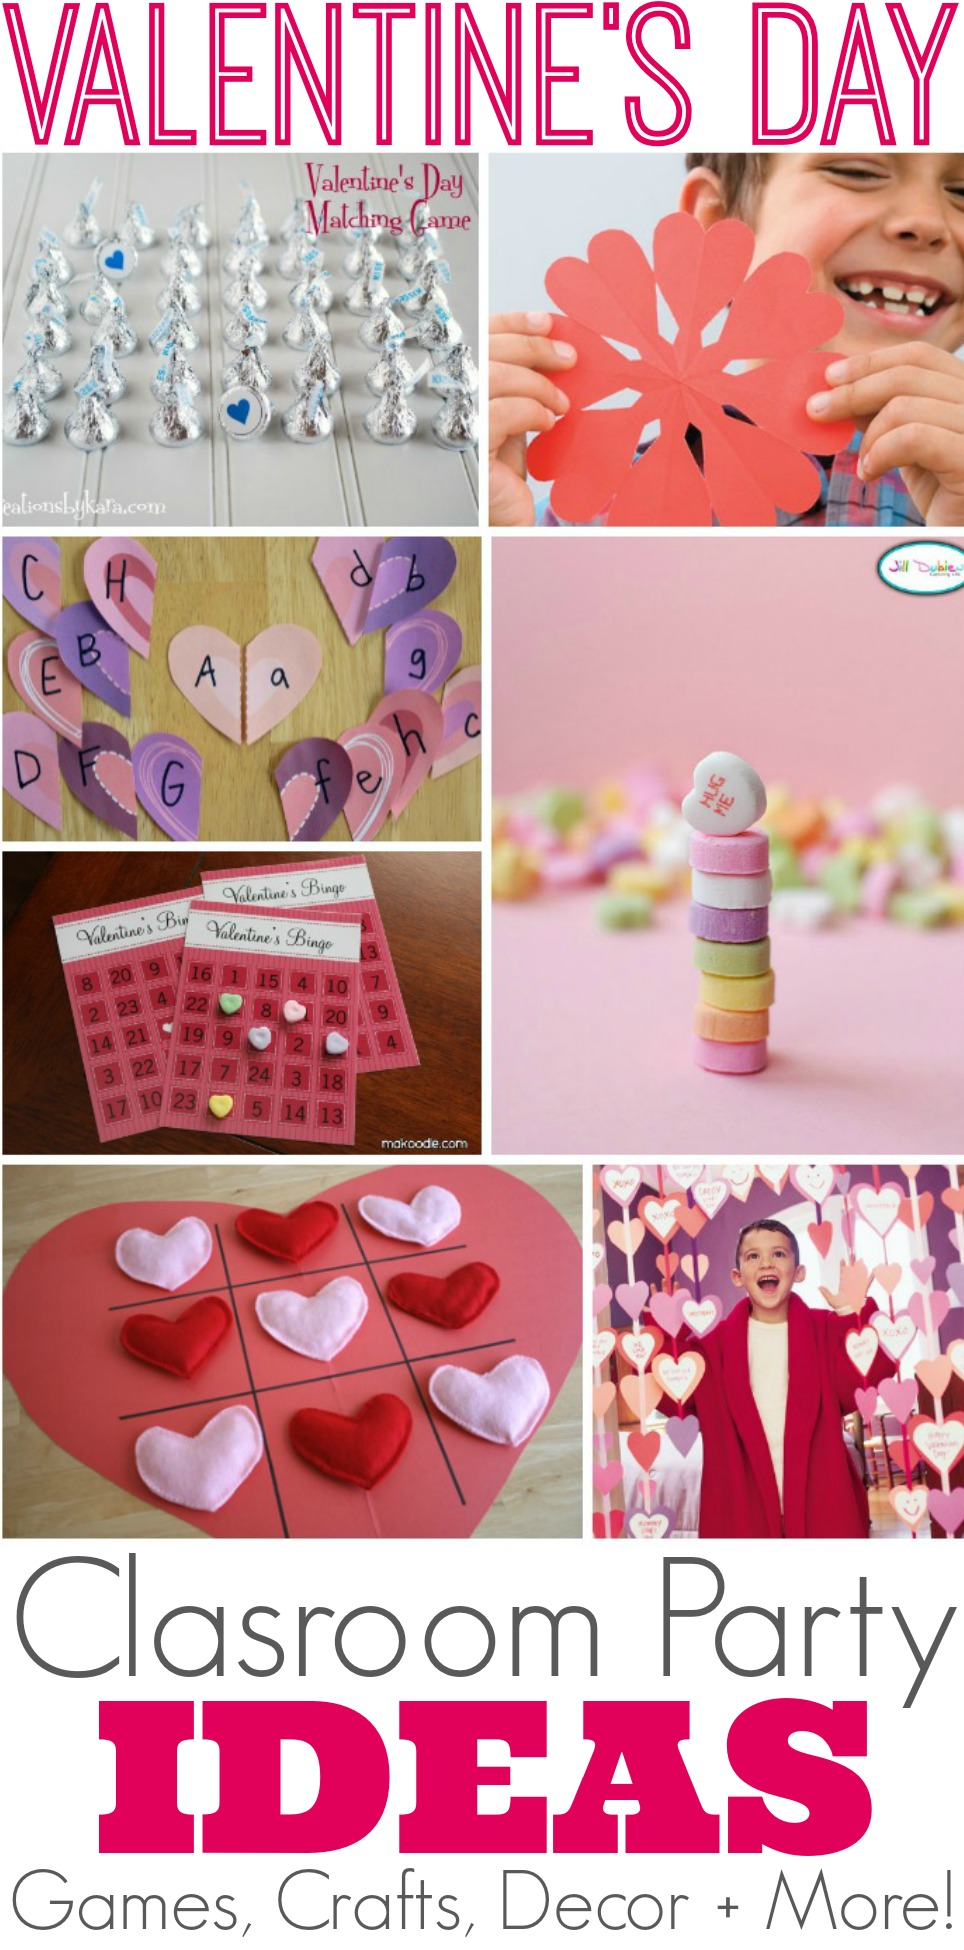 Classroom Birthday Party ~ Creative valentine s day class party ideas